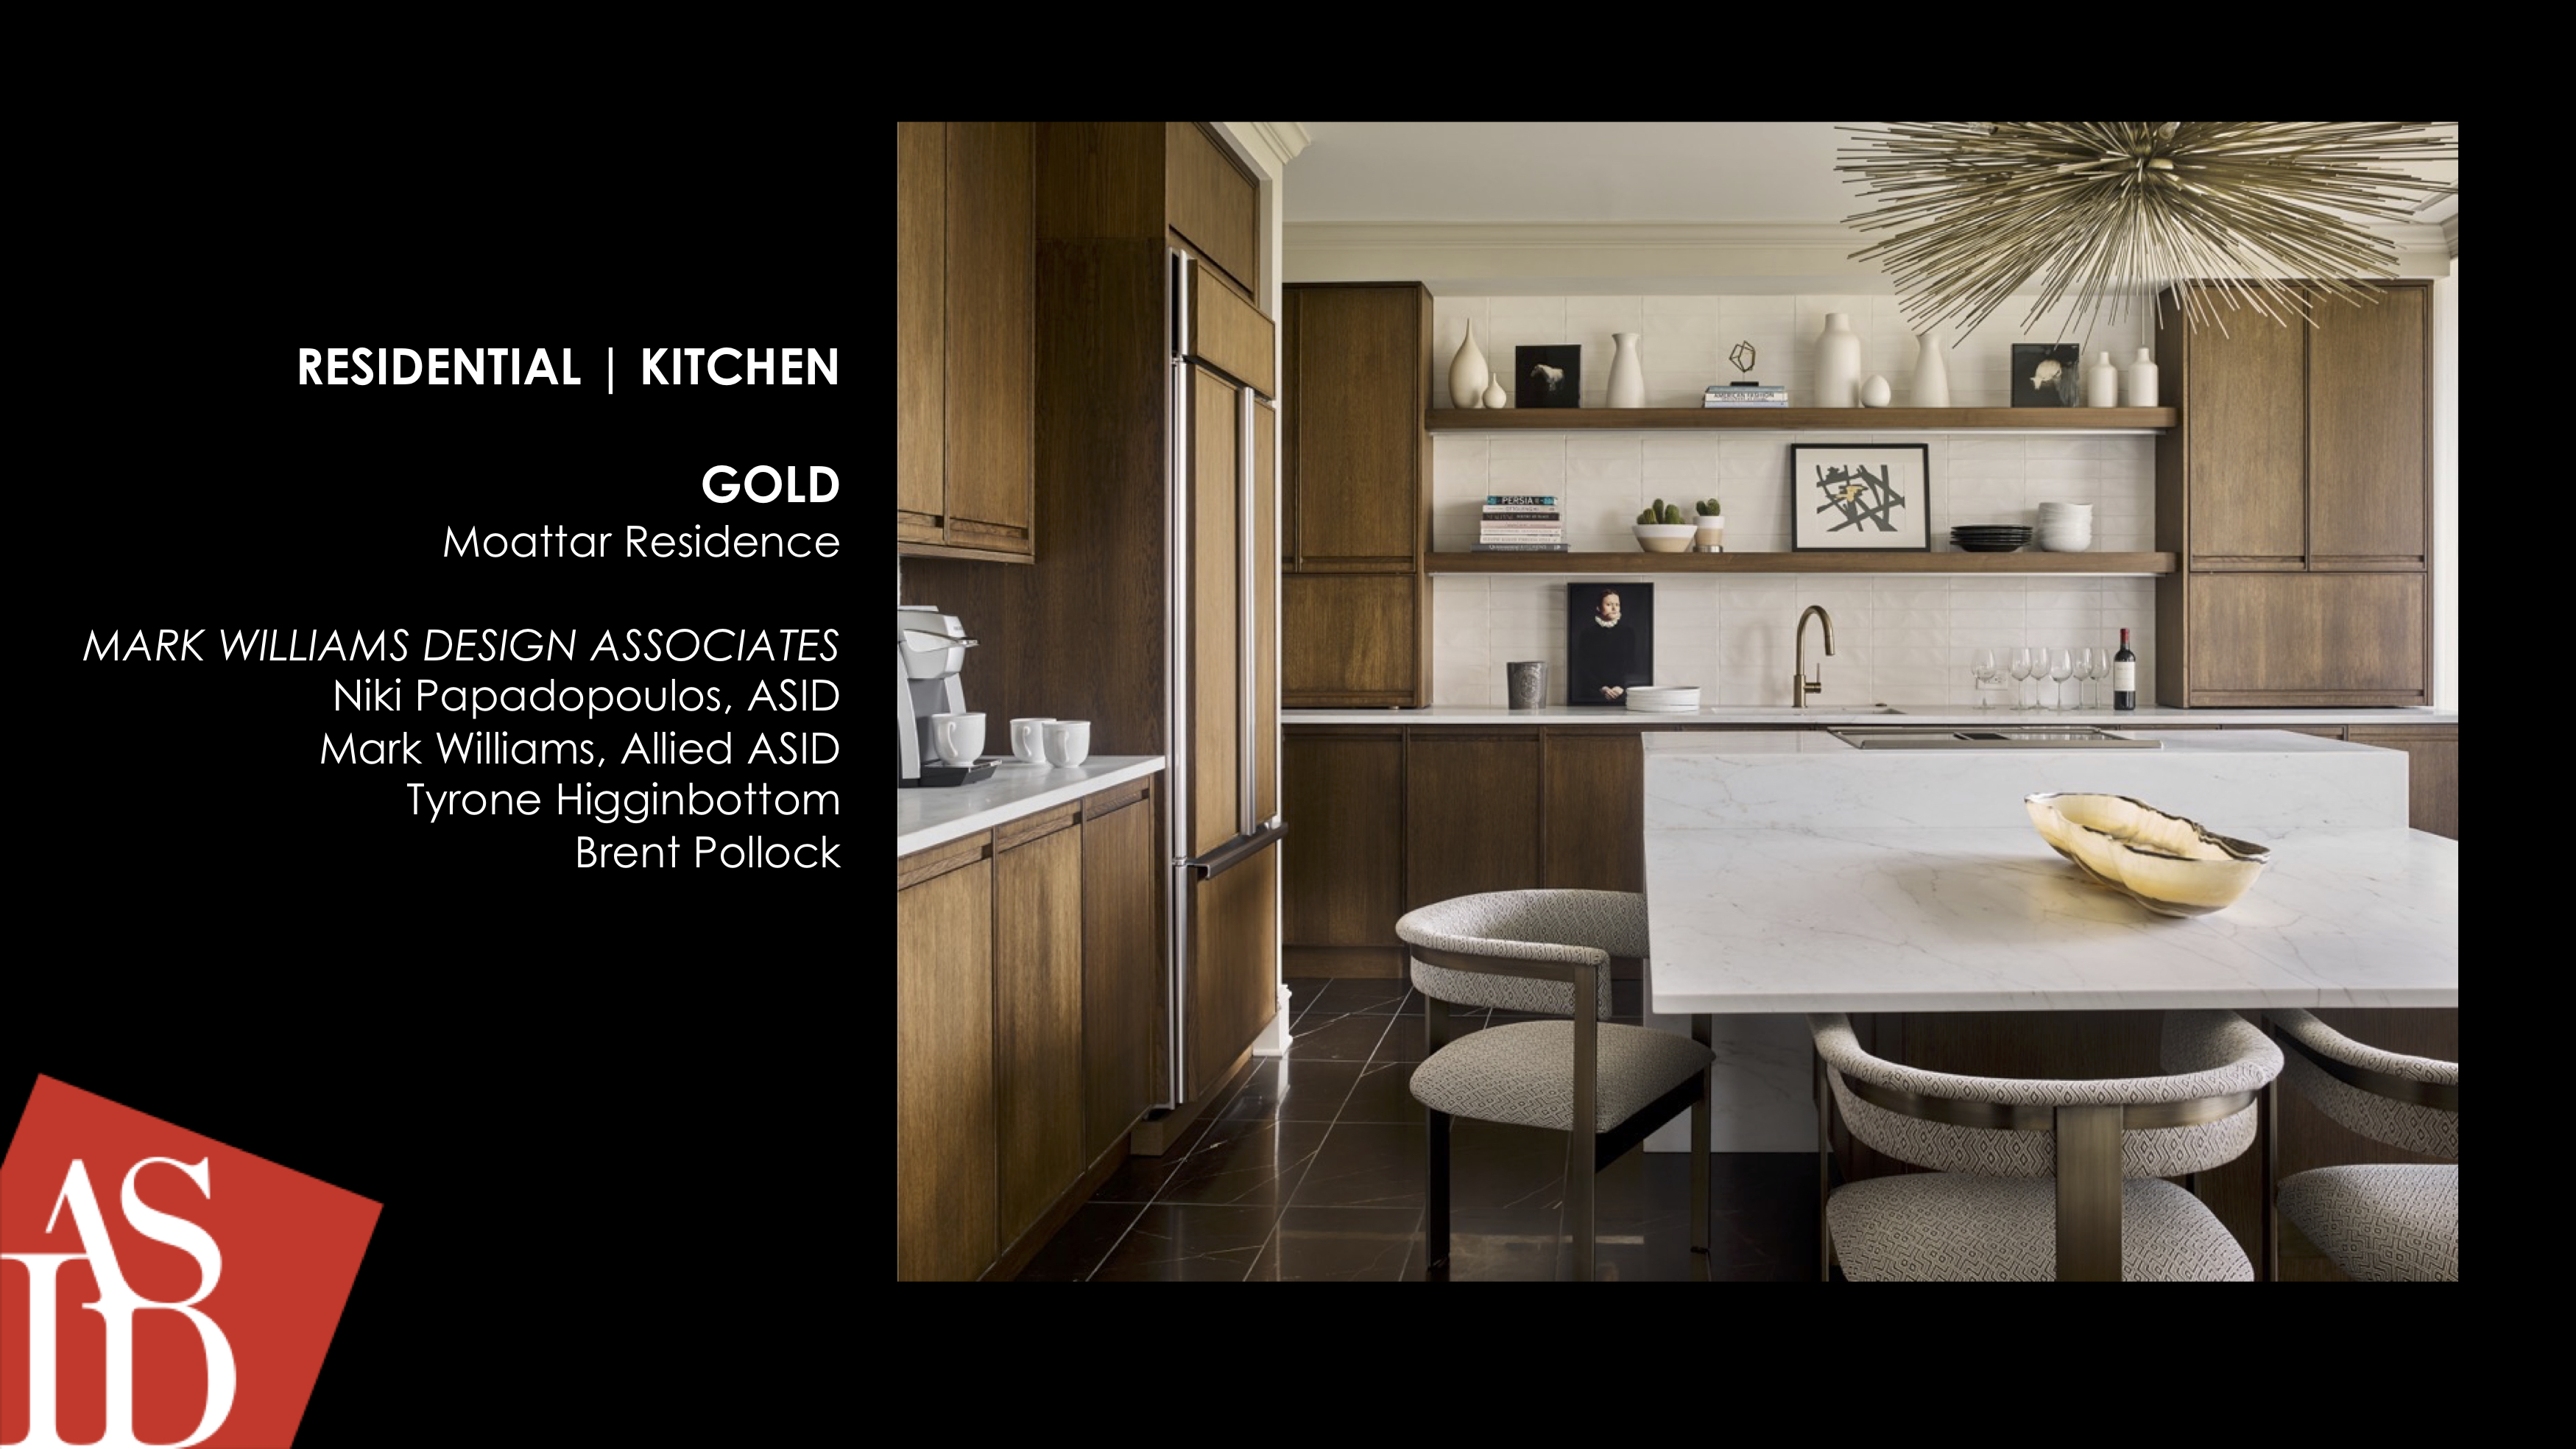 KITCHEN | GOLD